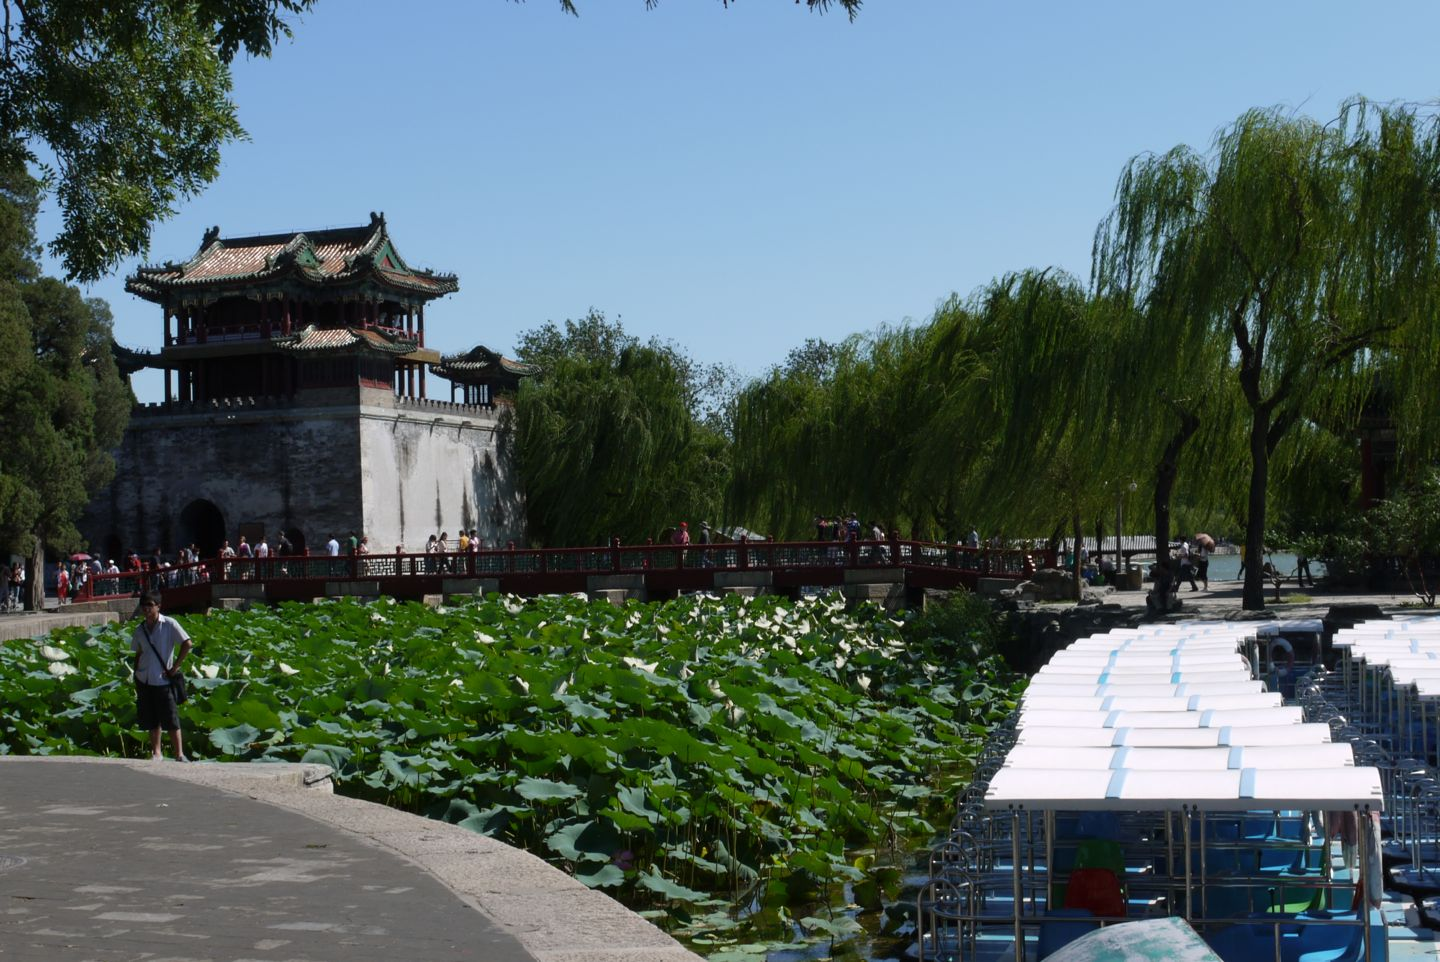 the grounds of the Summer Palace